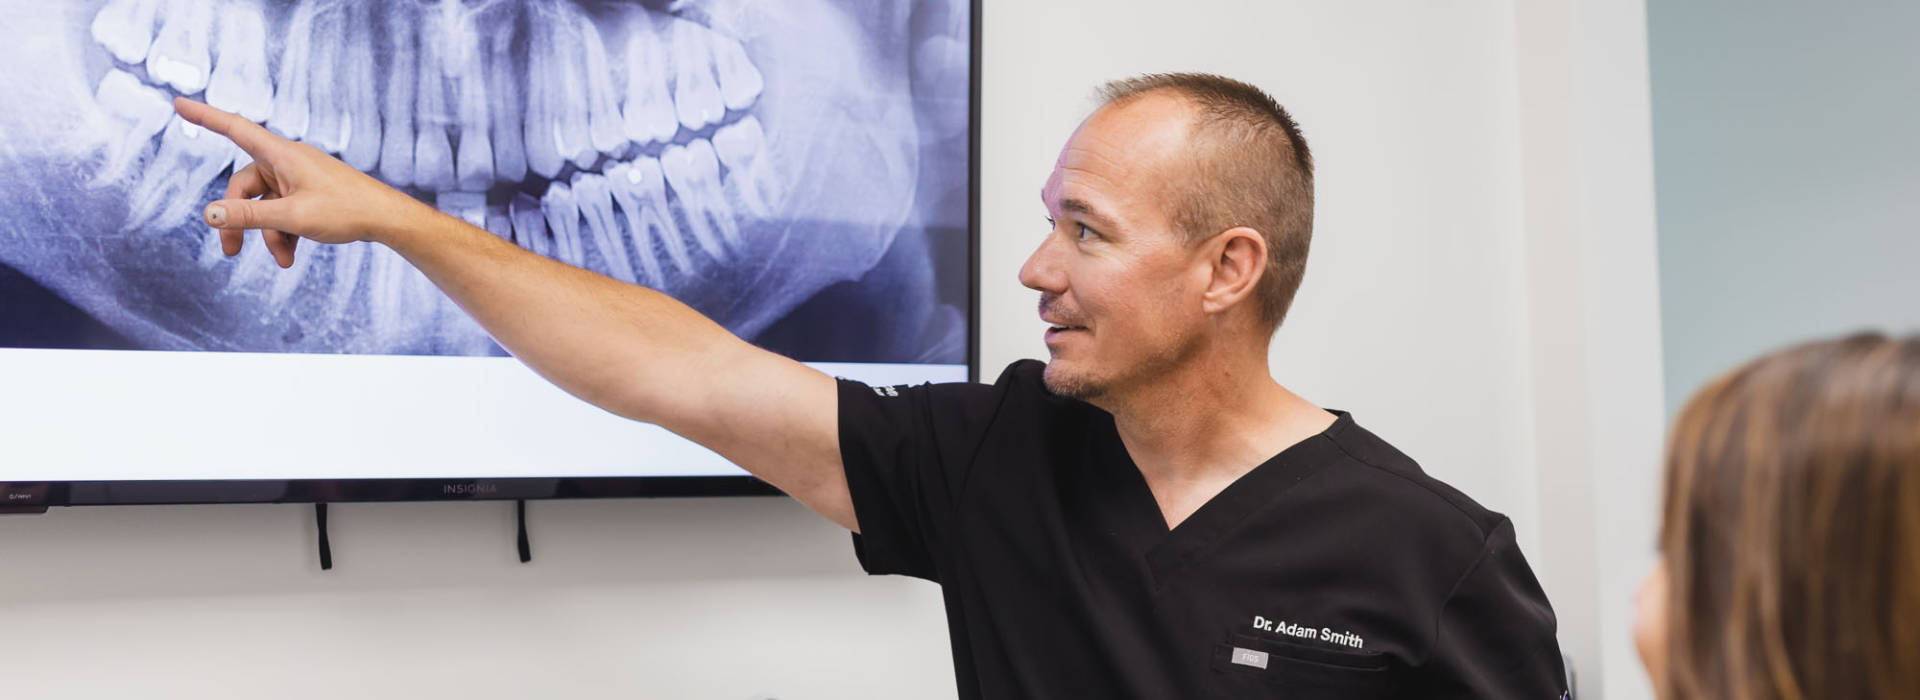 Dentist with RTG image.